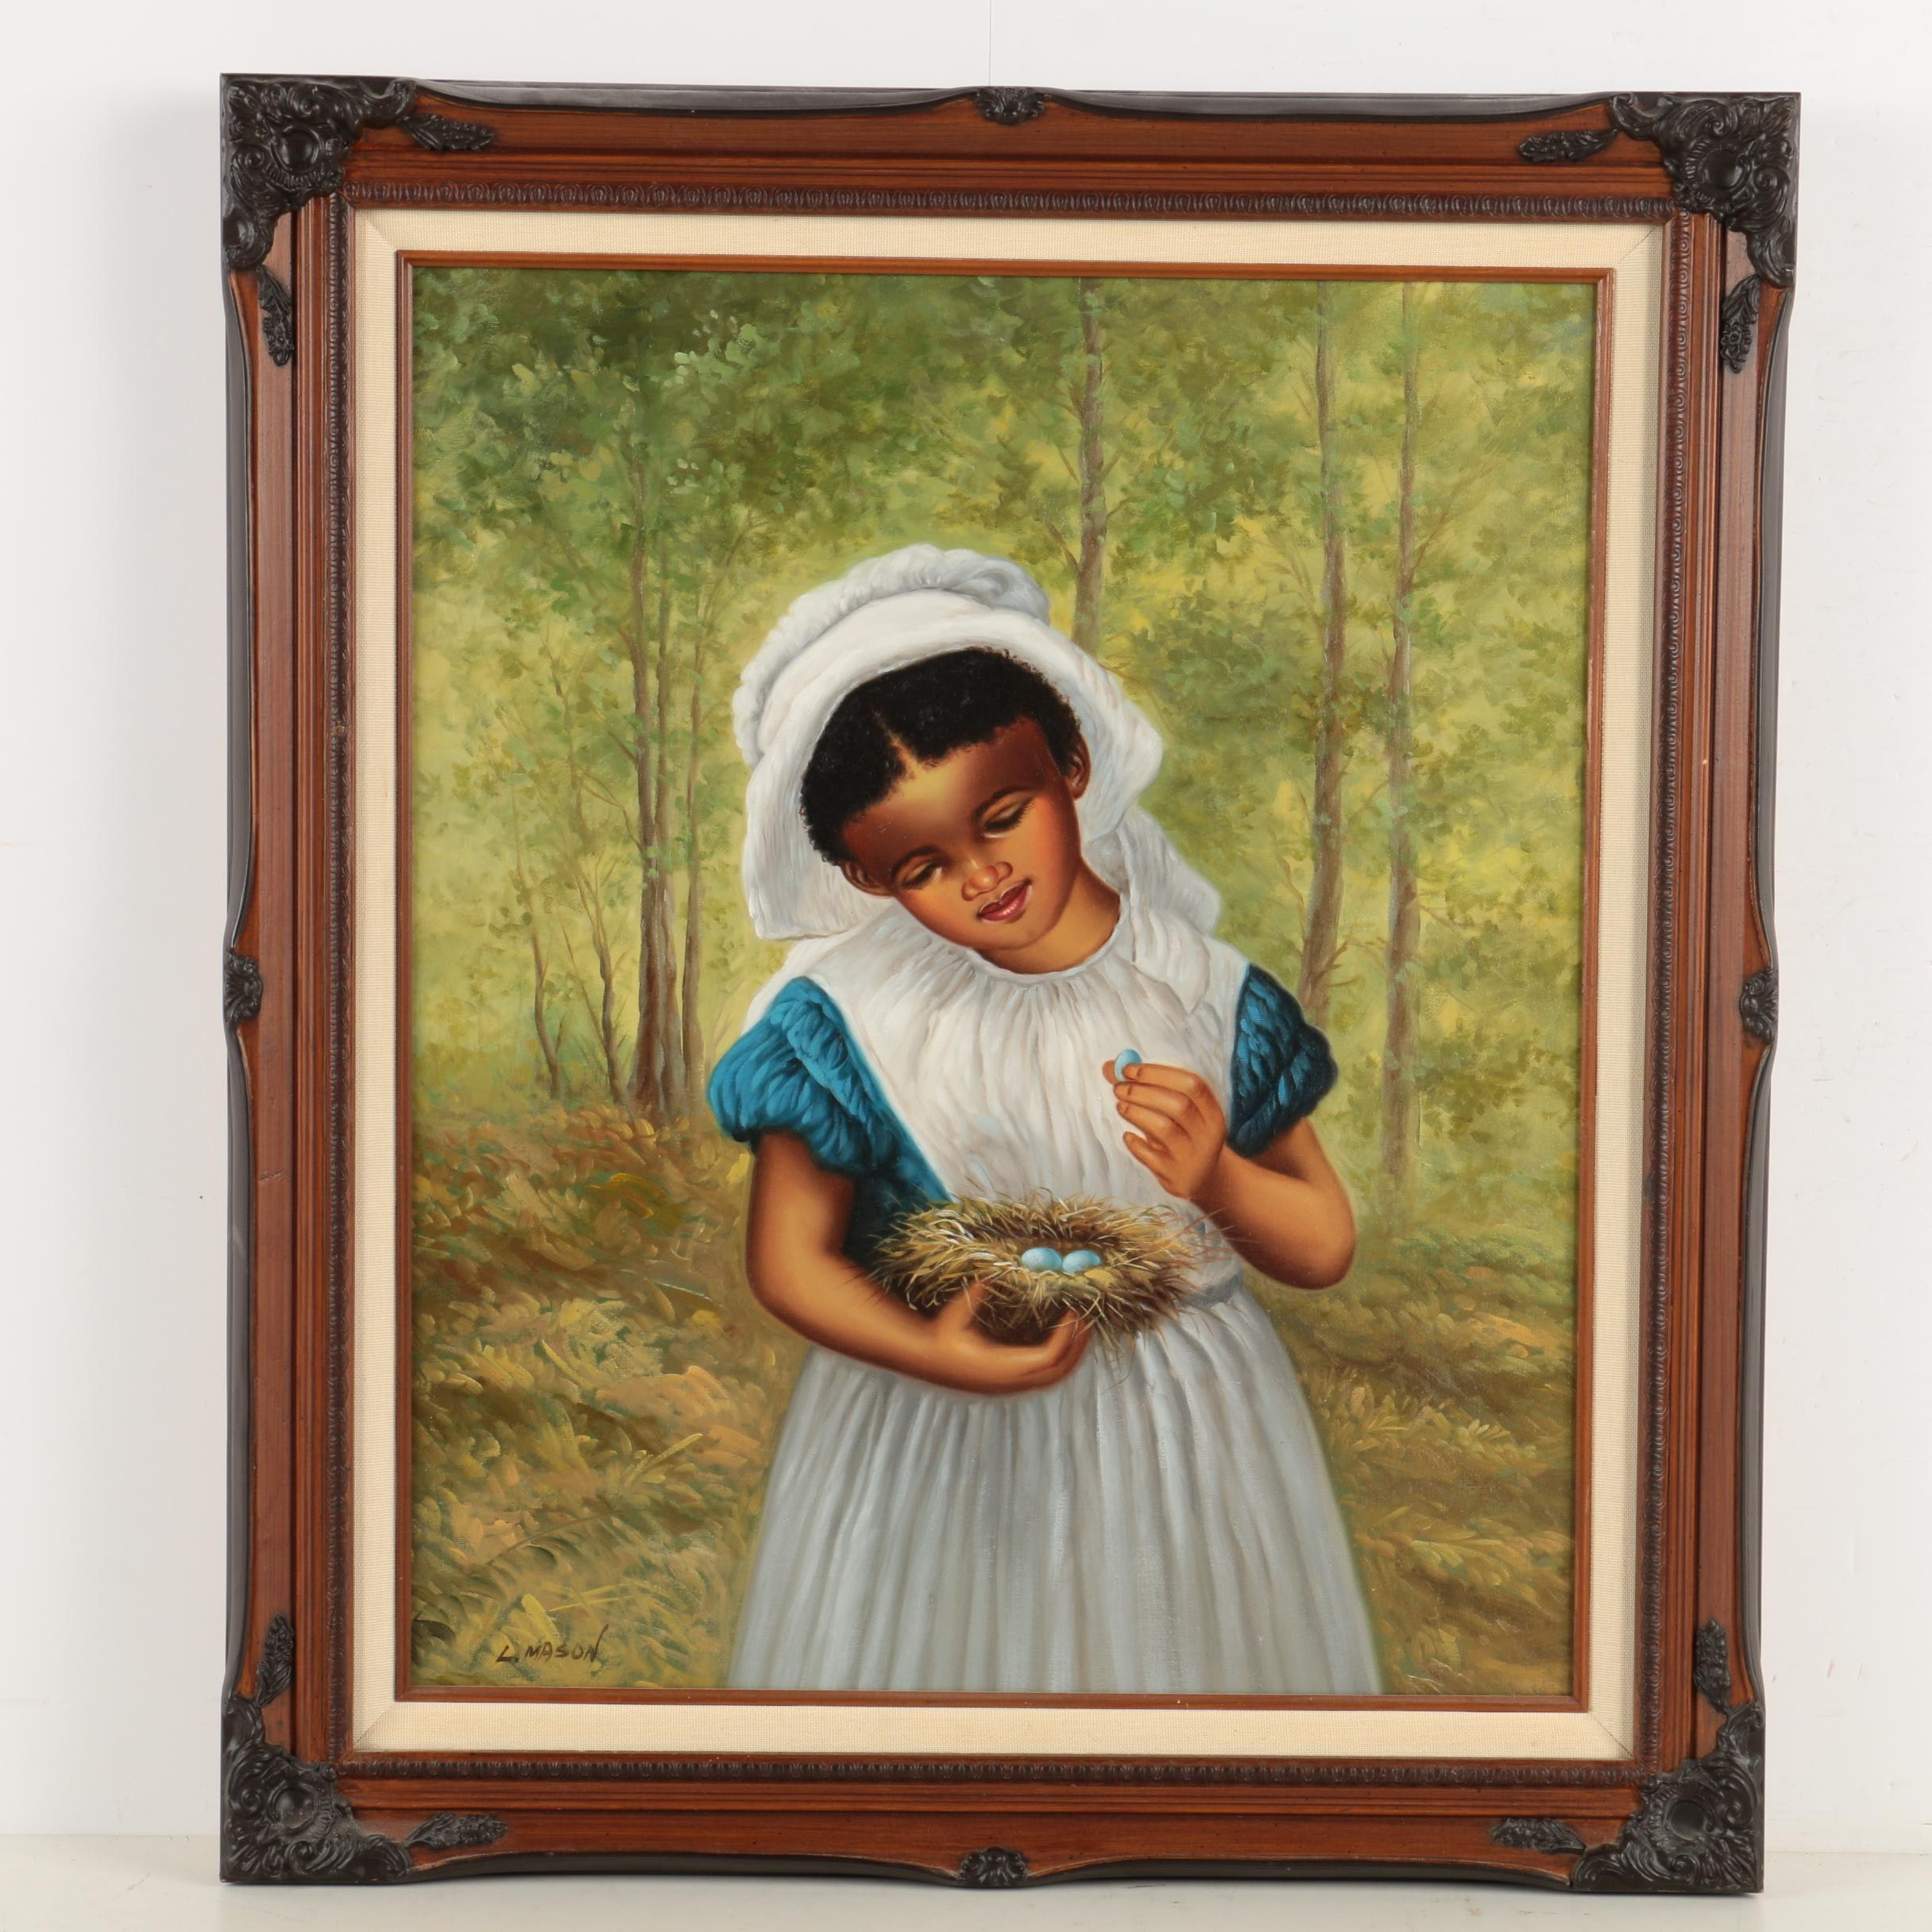 L. Mason Oil Painting of a Little Girl with a Bird's Nest